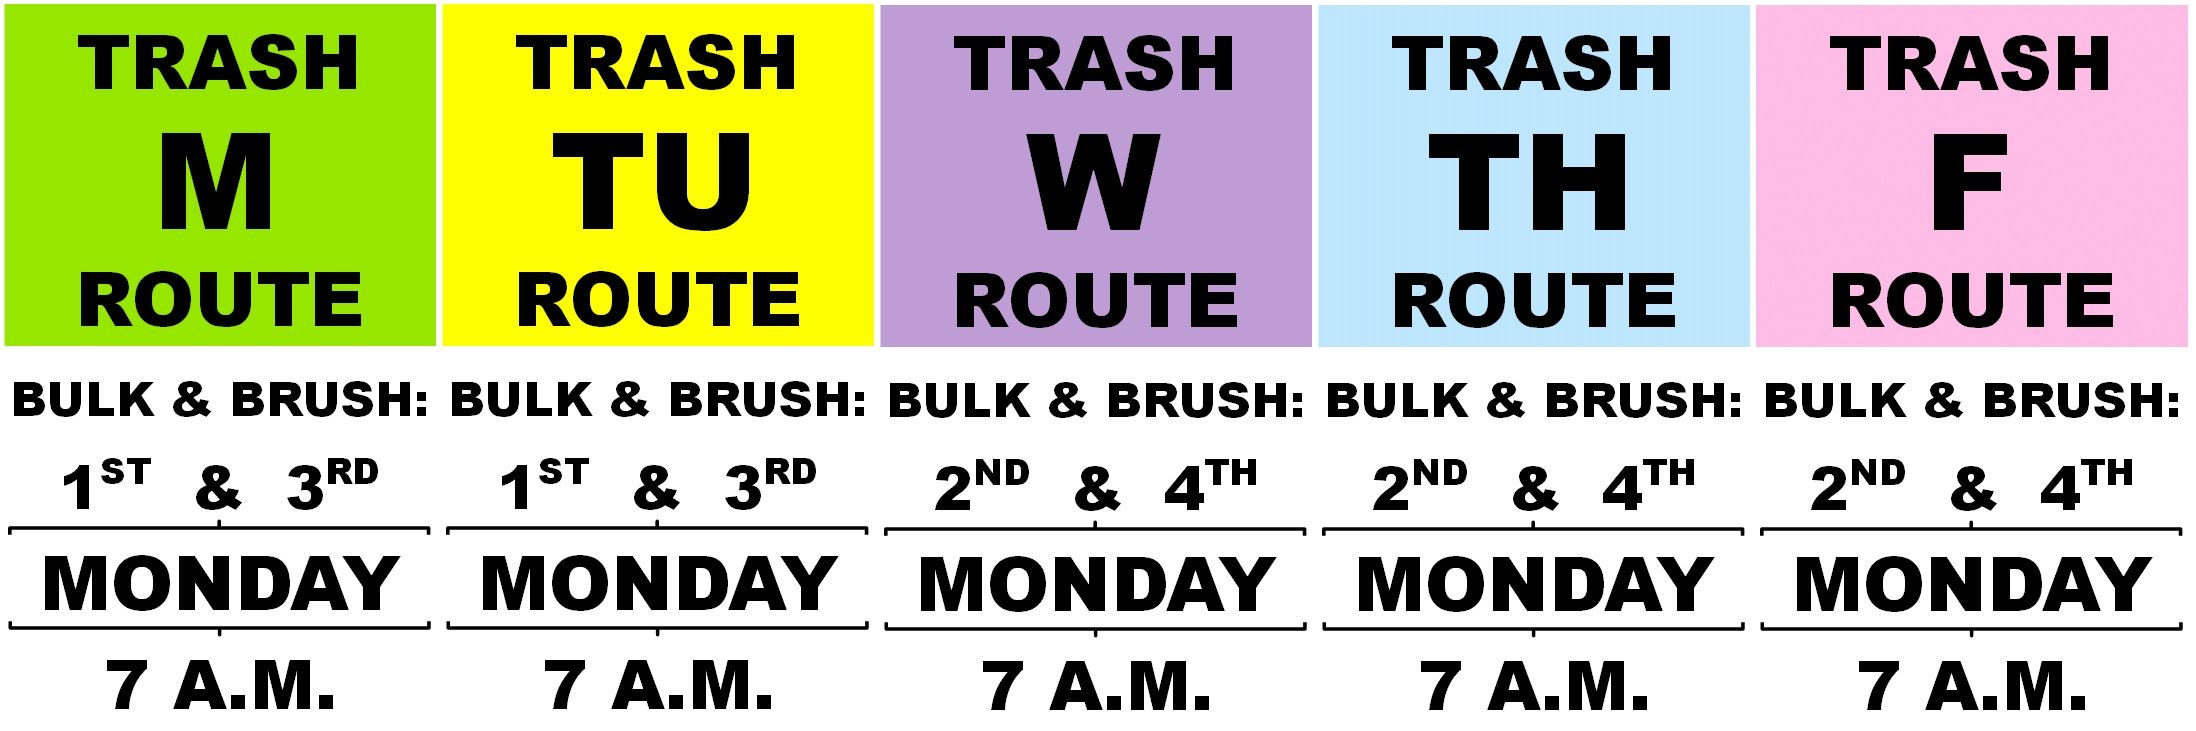 Bulk and Brush Services: Calendars, Maps, and FAQ | Town of